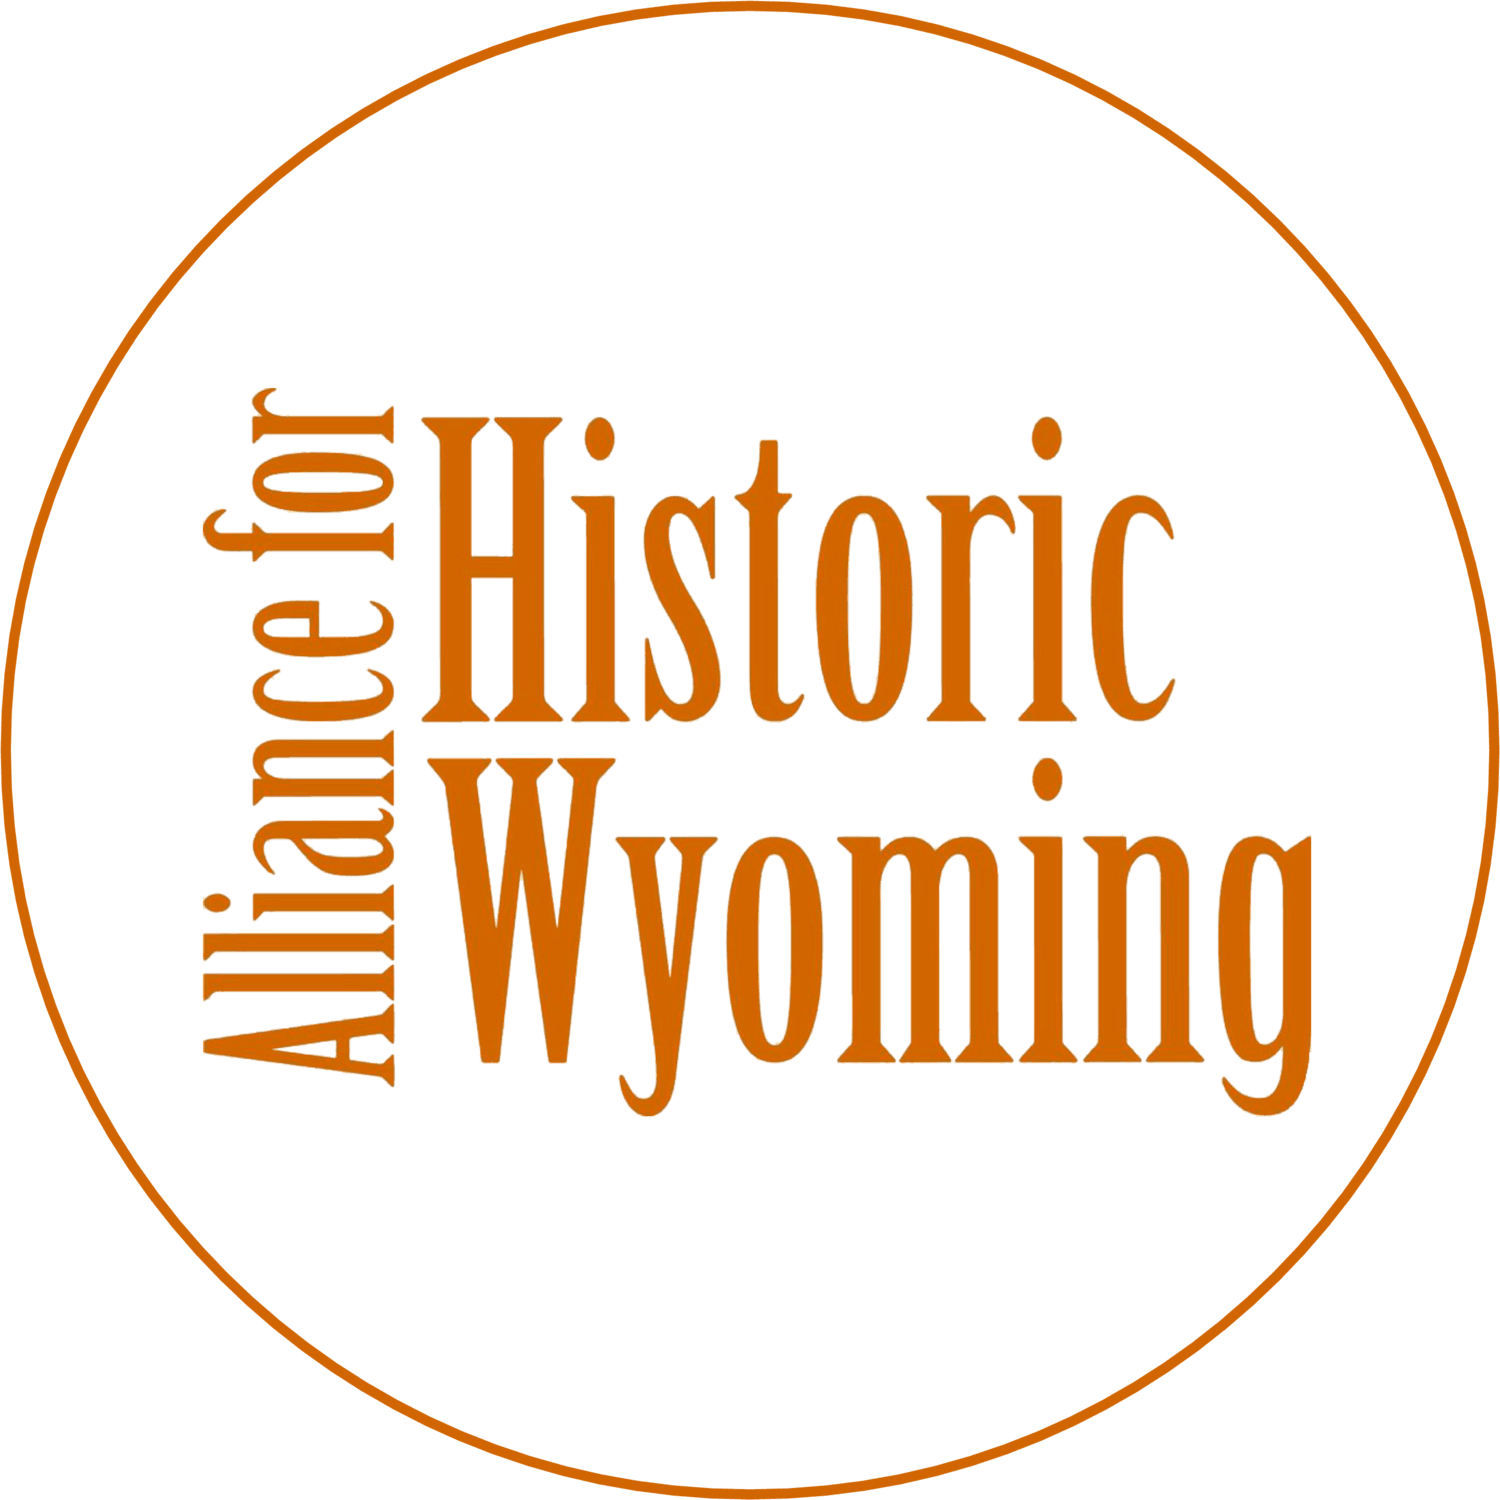 Alliance for Historic Wyoming Circle Logo